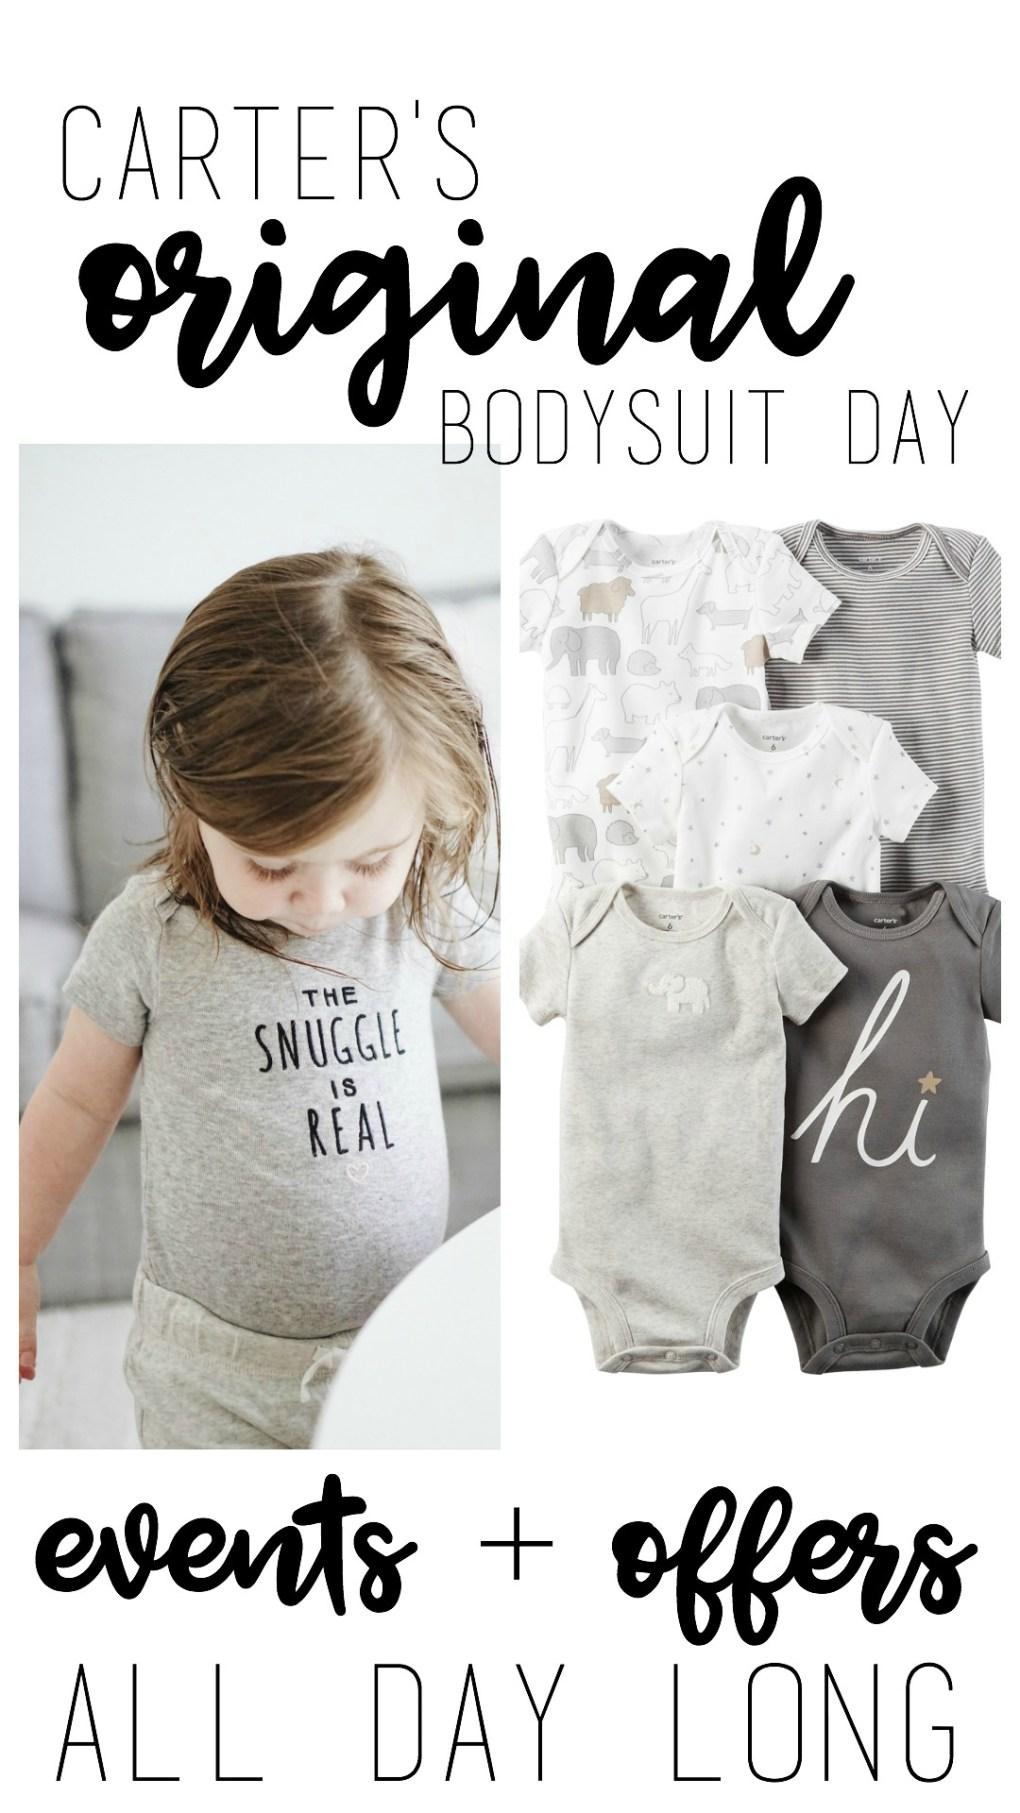 Carter's Original Bodysuit Day - Tons of events + offers all day long!